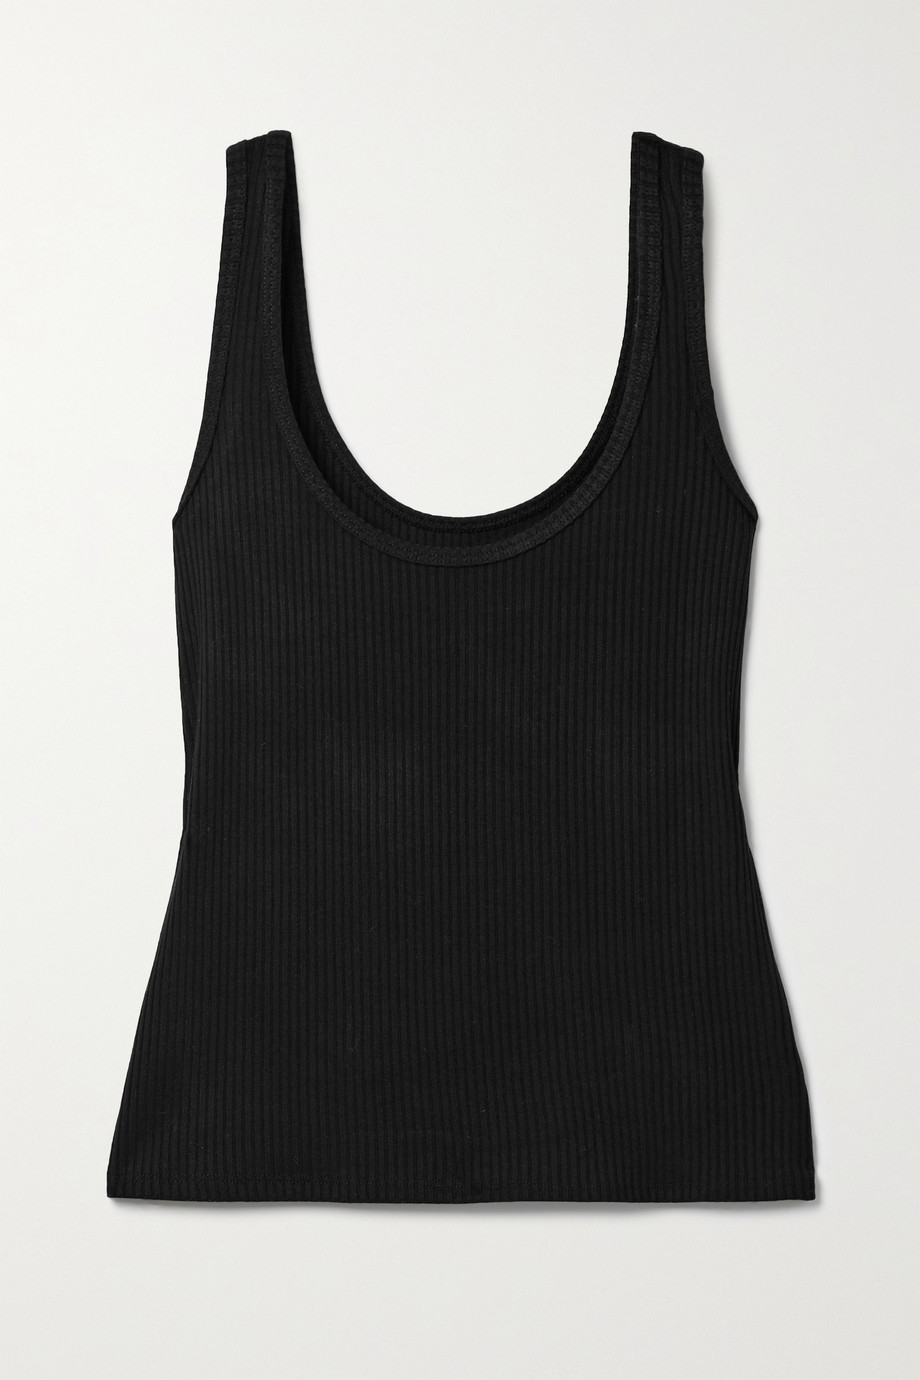 L'AGENCE Iman ribbed stretch-modal tank